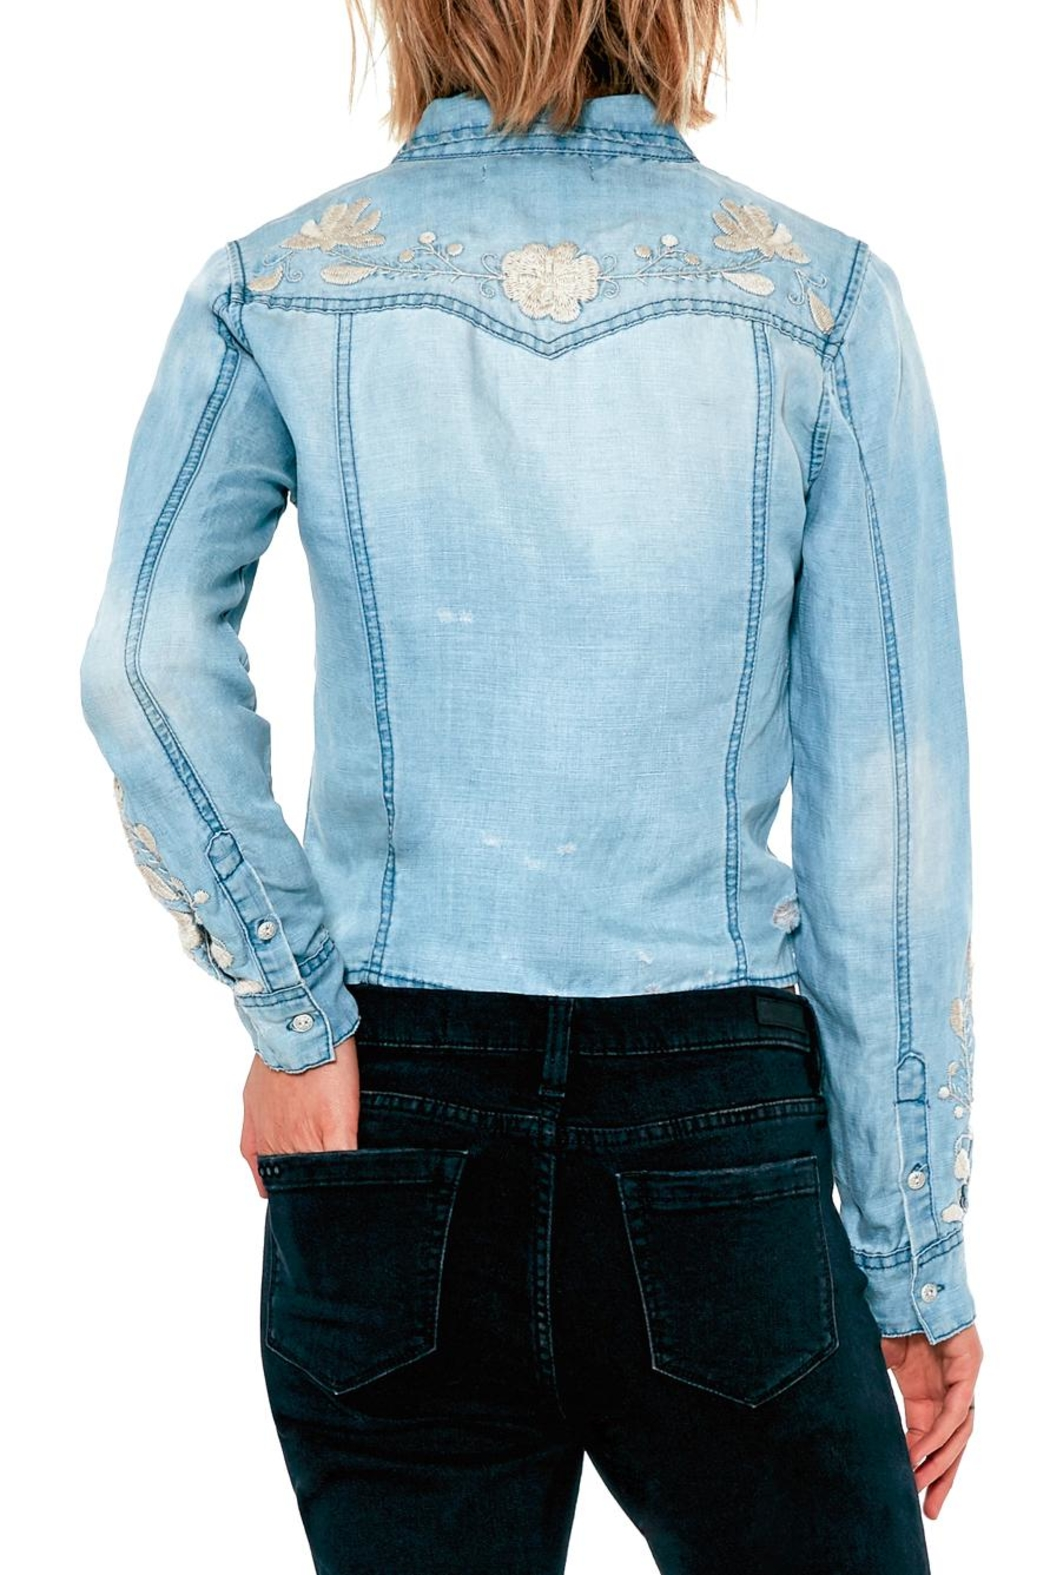 BlankNYC Embroidered Knotted Top - Side Cropped Image